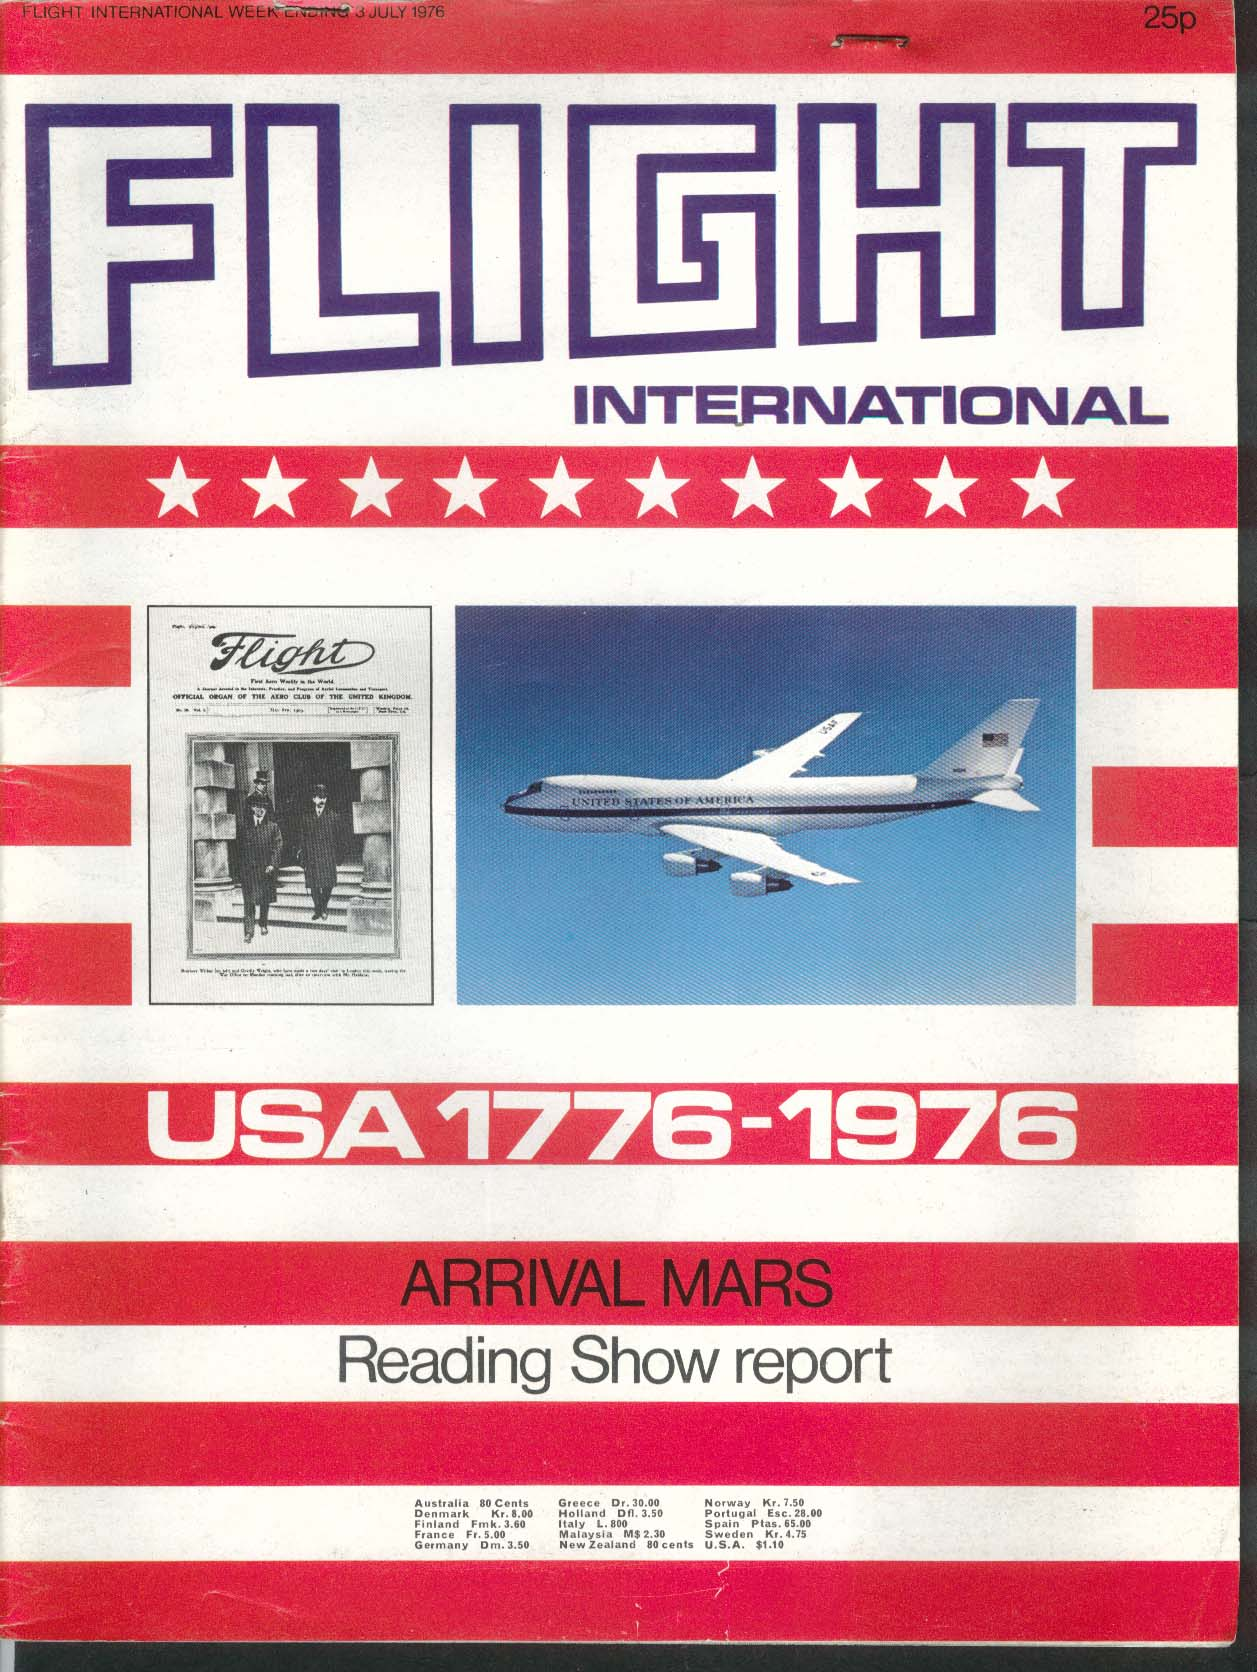 FLIGHT INTERNATIONAL Bicentennial Retrospective Arrival Mars 7/3 1976